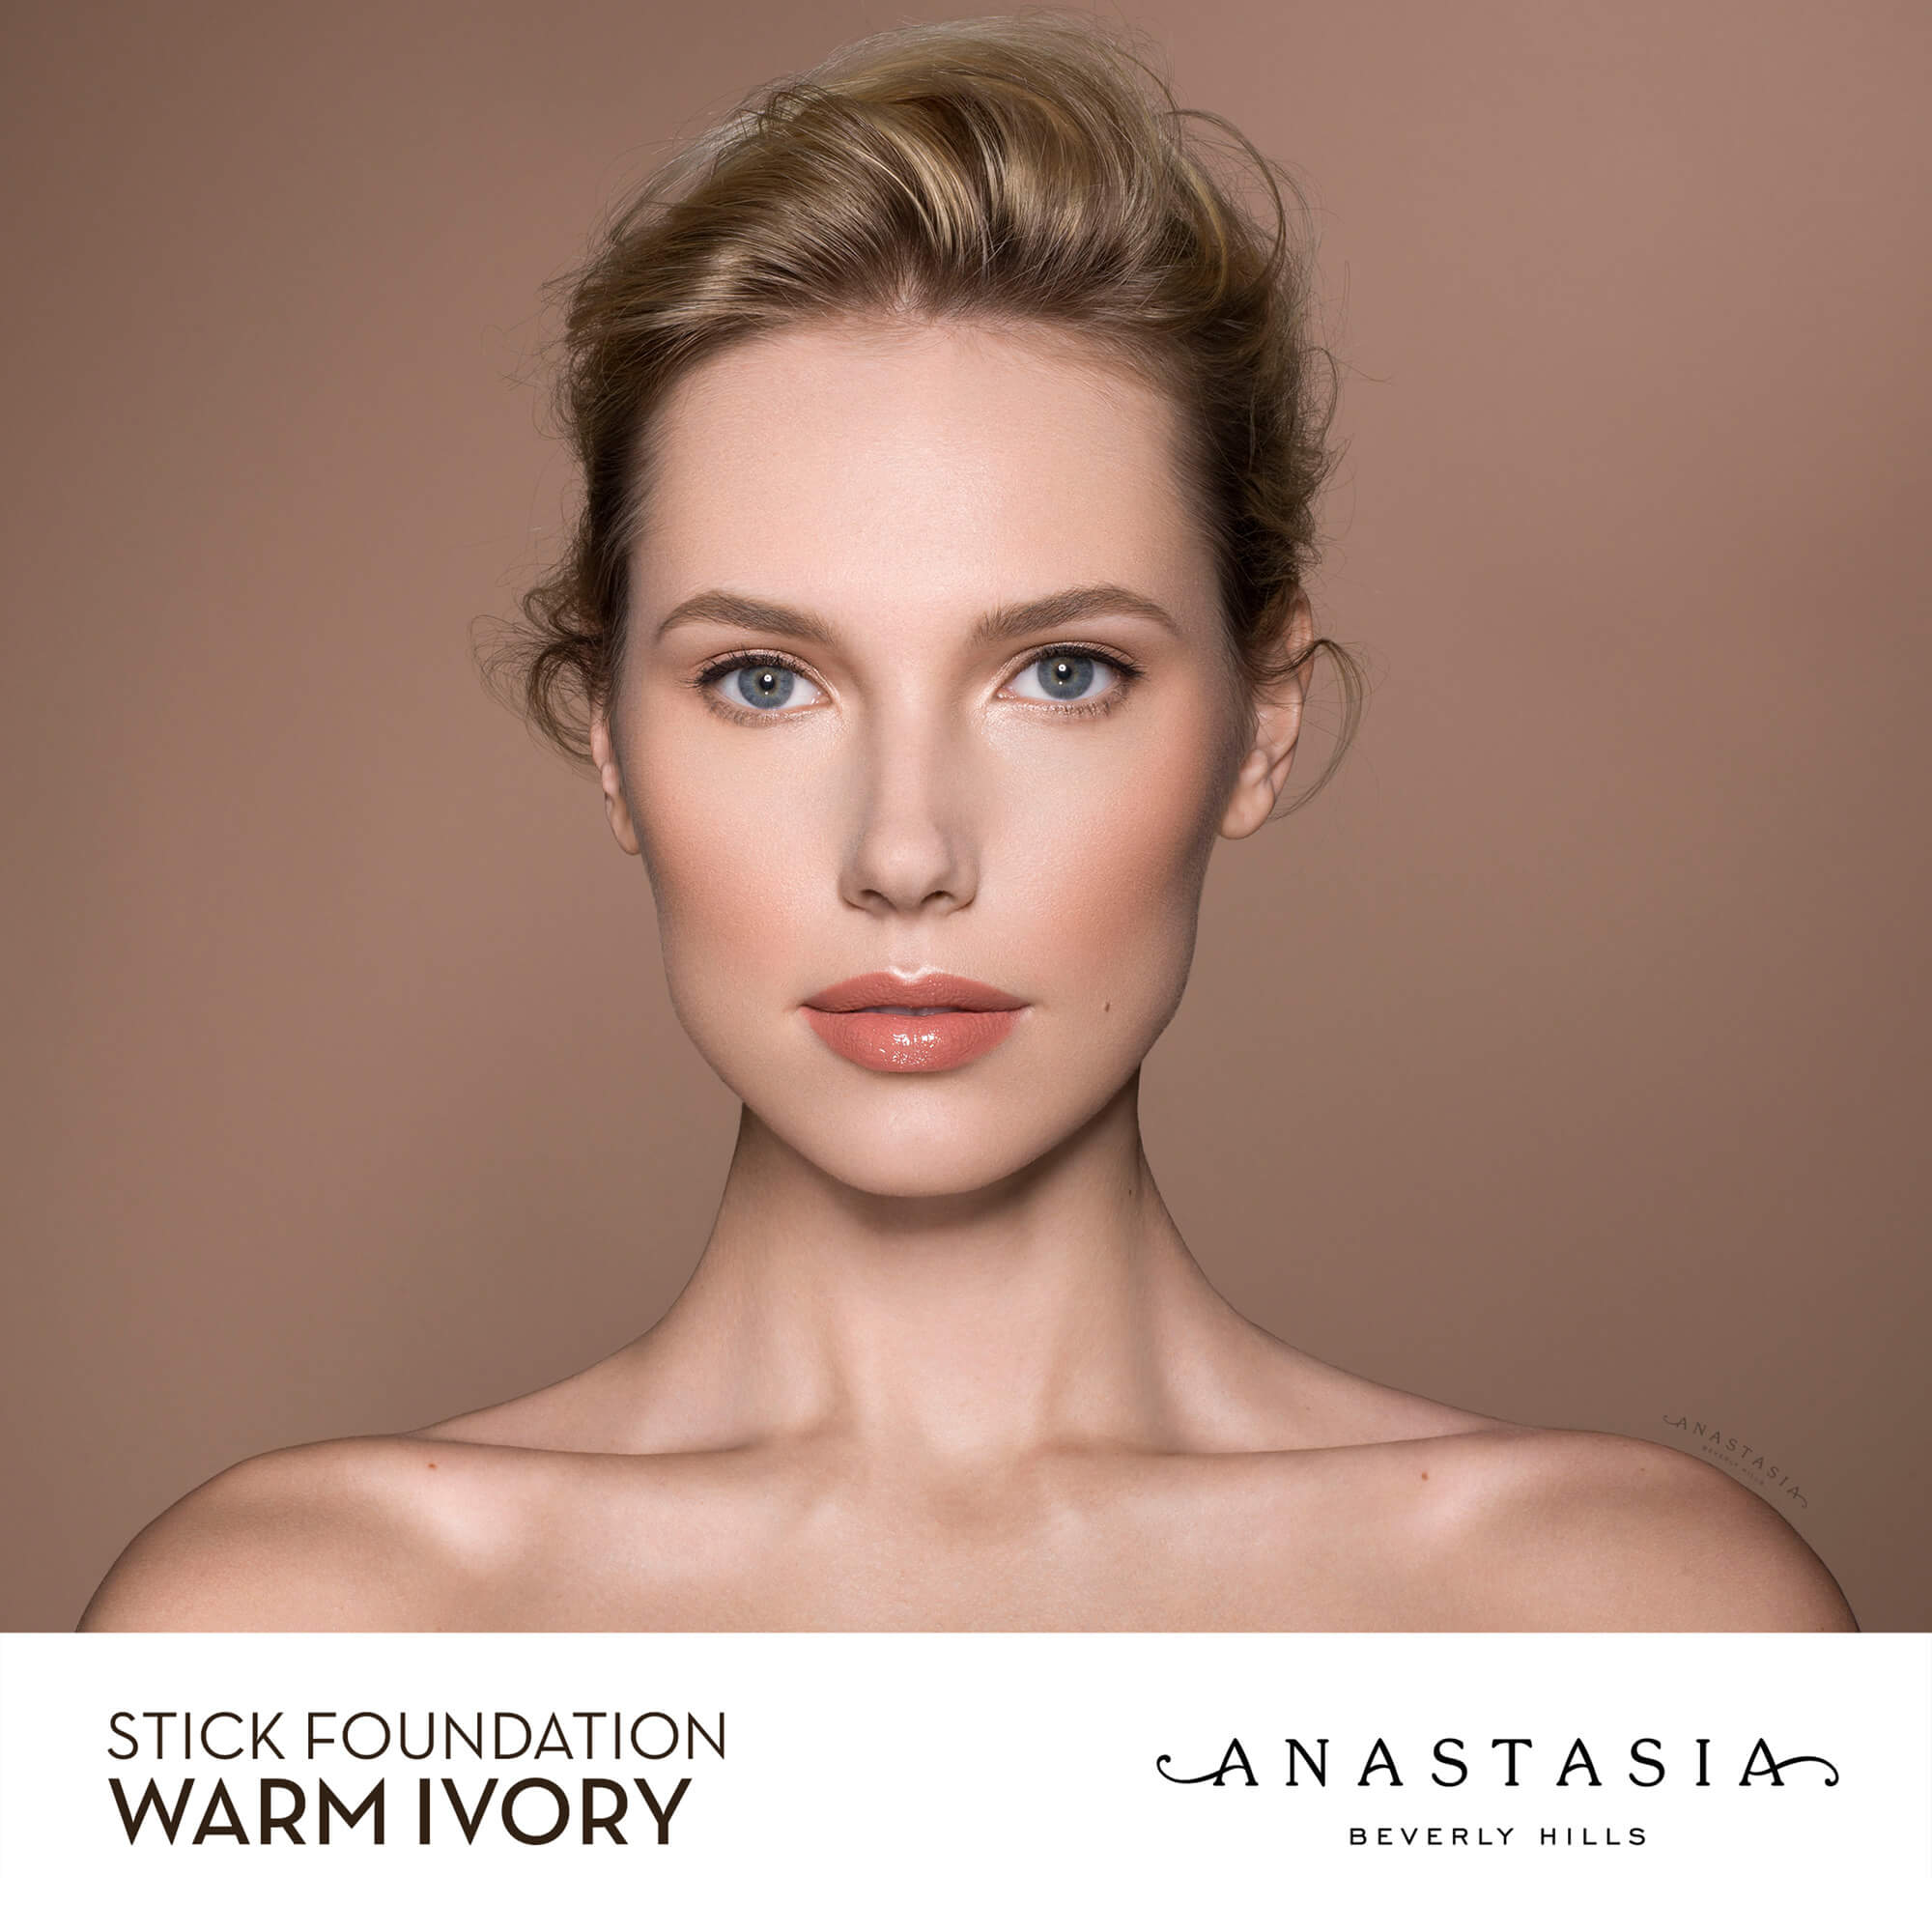 Stick Foundation - Warm Ivory